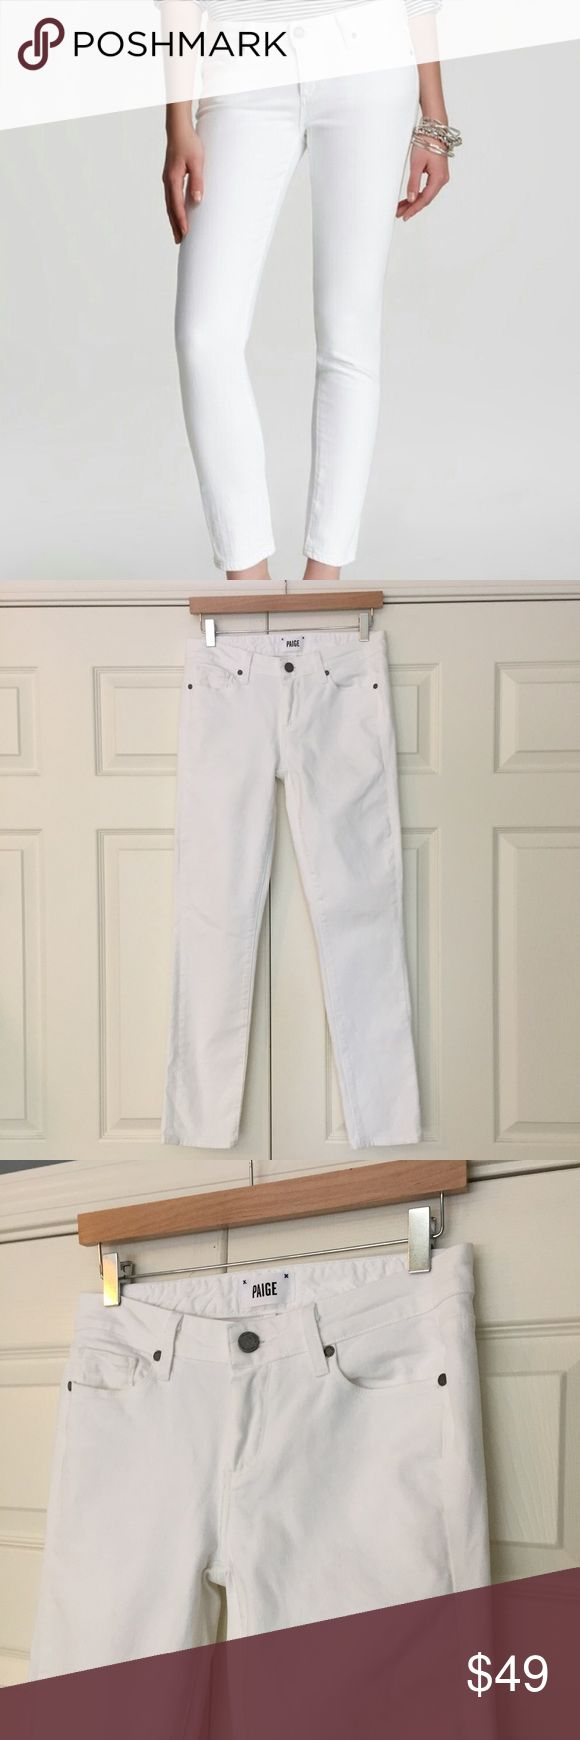 """Paige White Skyline Ankle Peg Jean classic wardrobe staple with amazing Paige fit! optic white Skyline Ankle Peg jeans. 98% cotton 2% elastane. excellent condition - worn just once. please see closeup pic of inside edge of hem on right leg for a stain - not noticeable since it's on the inside edge. size 28. waist flat is 14.5"""", front rise is 8"""", inseam is 28.5"""". Paige Jeans Jeans Skinny"""